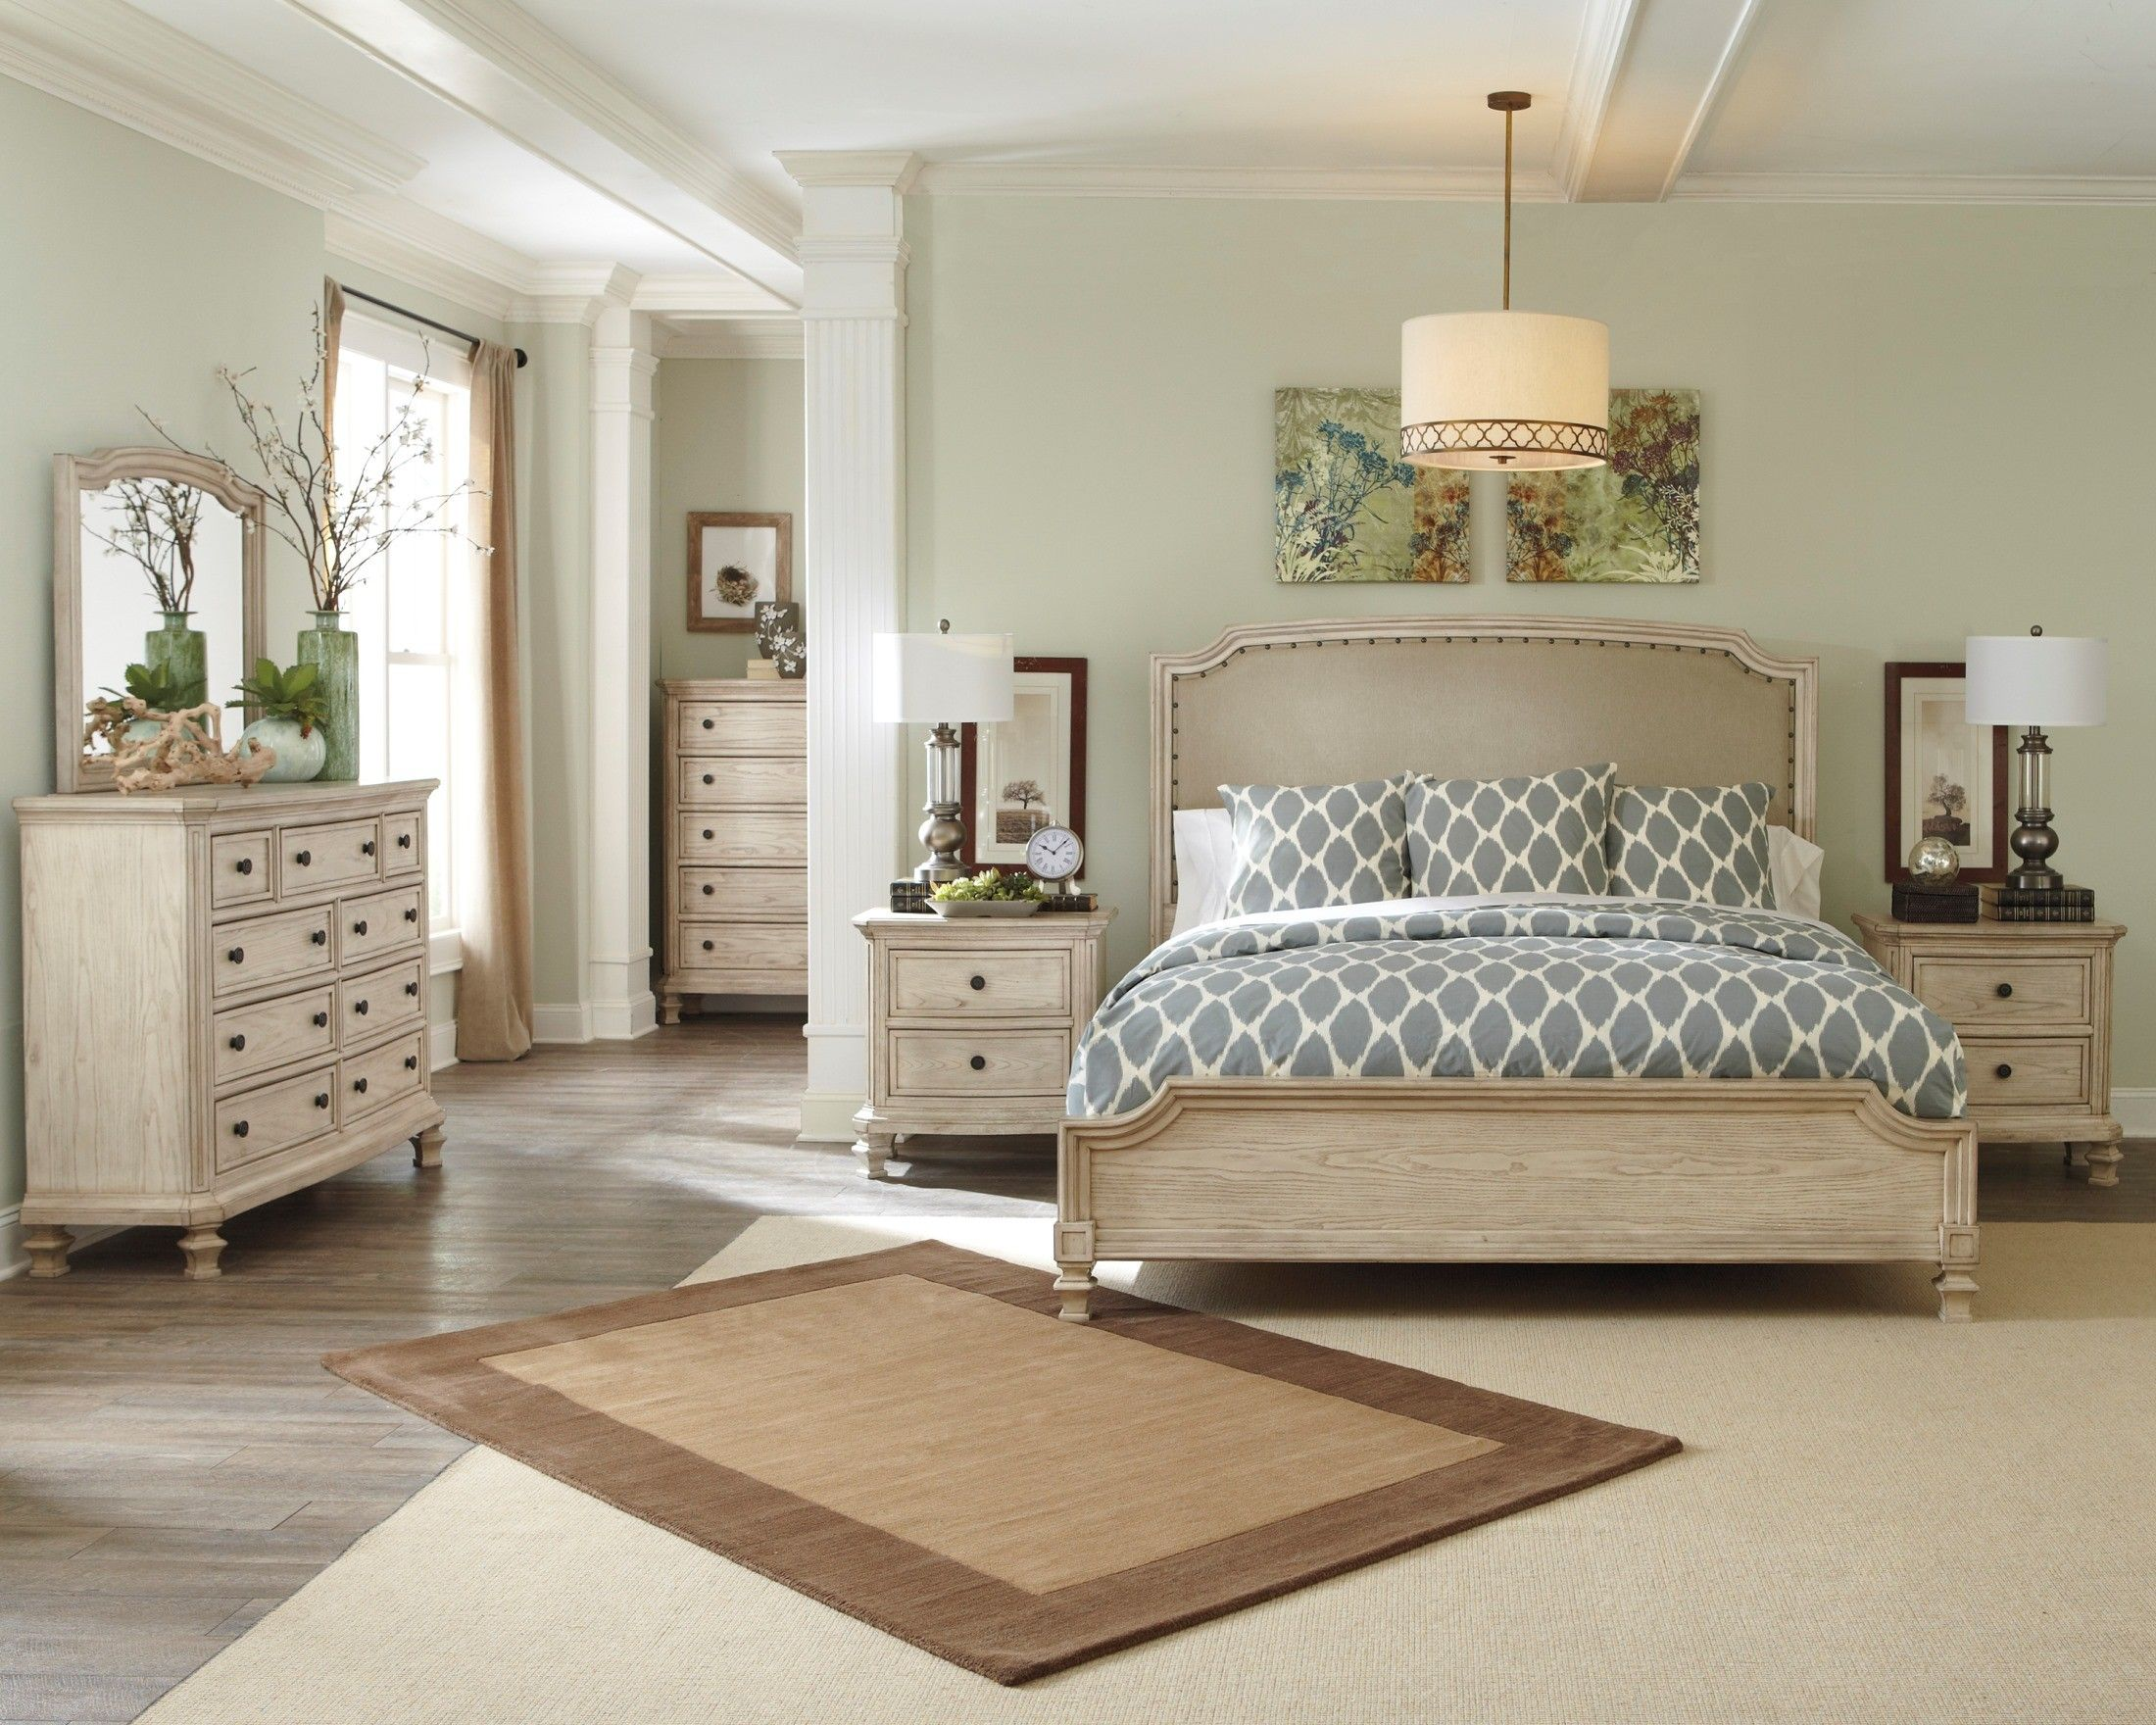 Demarlos  ASL B693 78 76 97  Ashley Furniture also comes. Best 25  Ashley furniture bedroom sets ideas on Pinterest